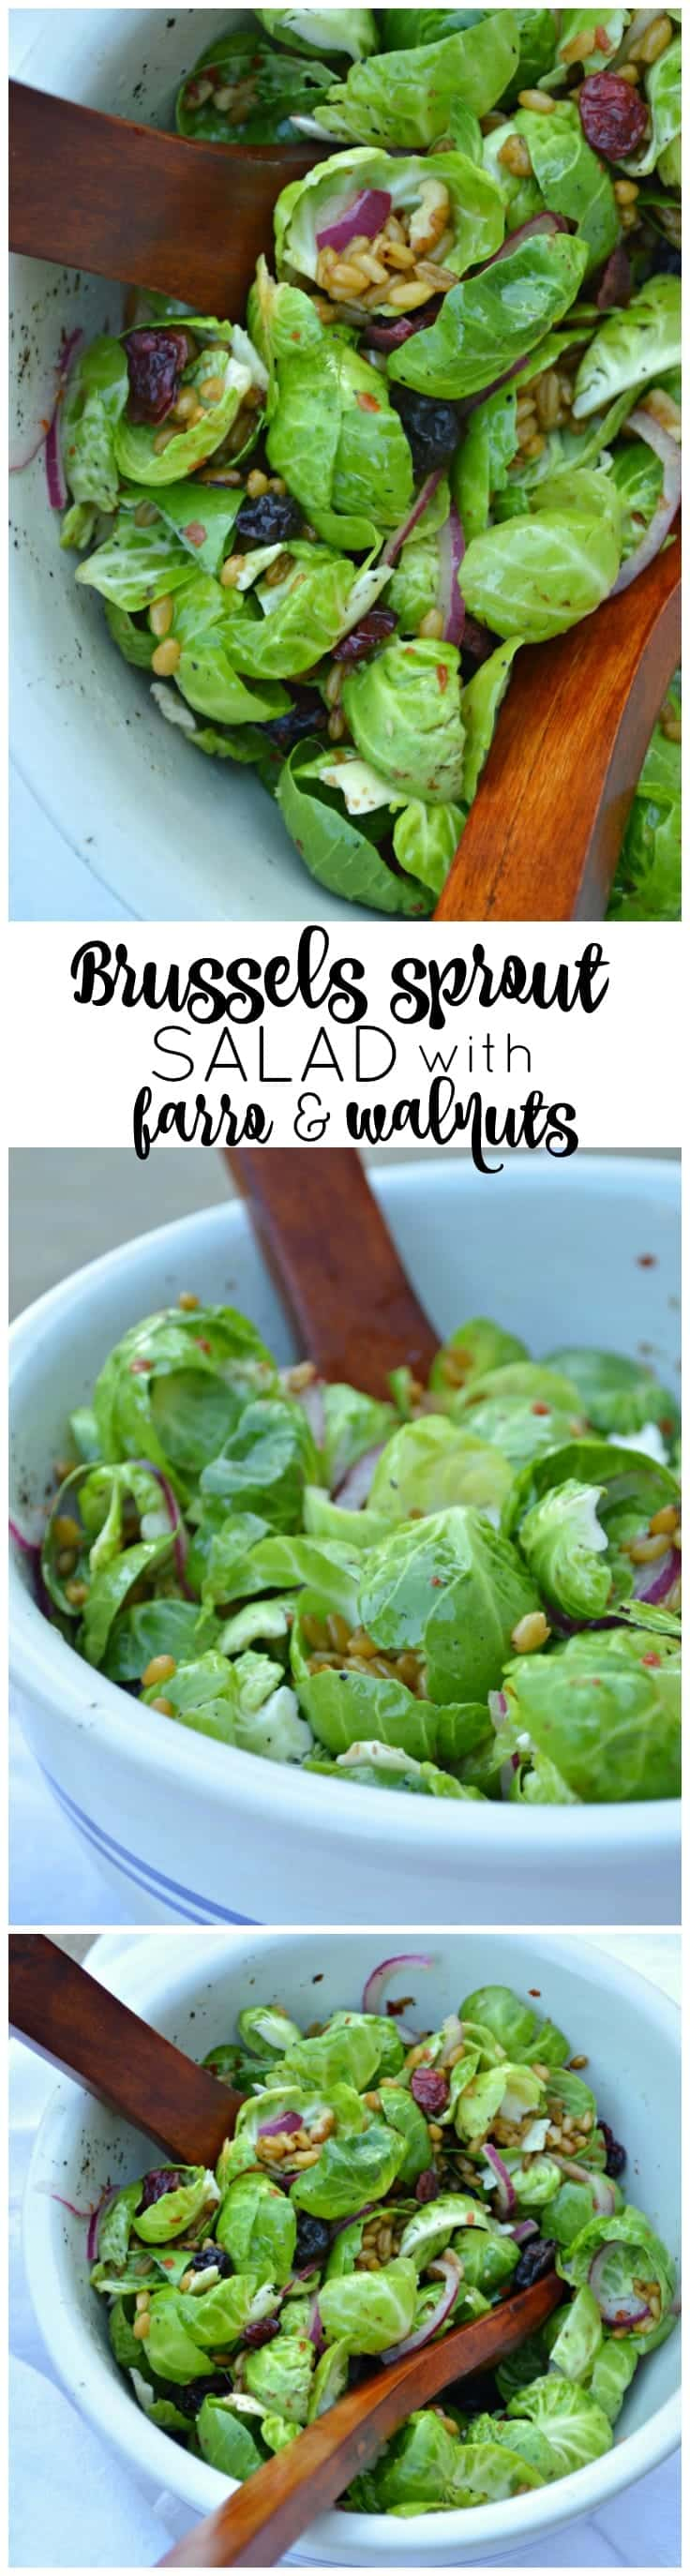 Brussels Sprout Salad with Farro and Walnuts is a crisp, fresh addition to your holiday table!